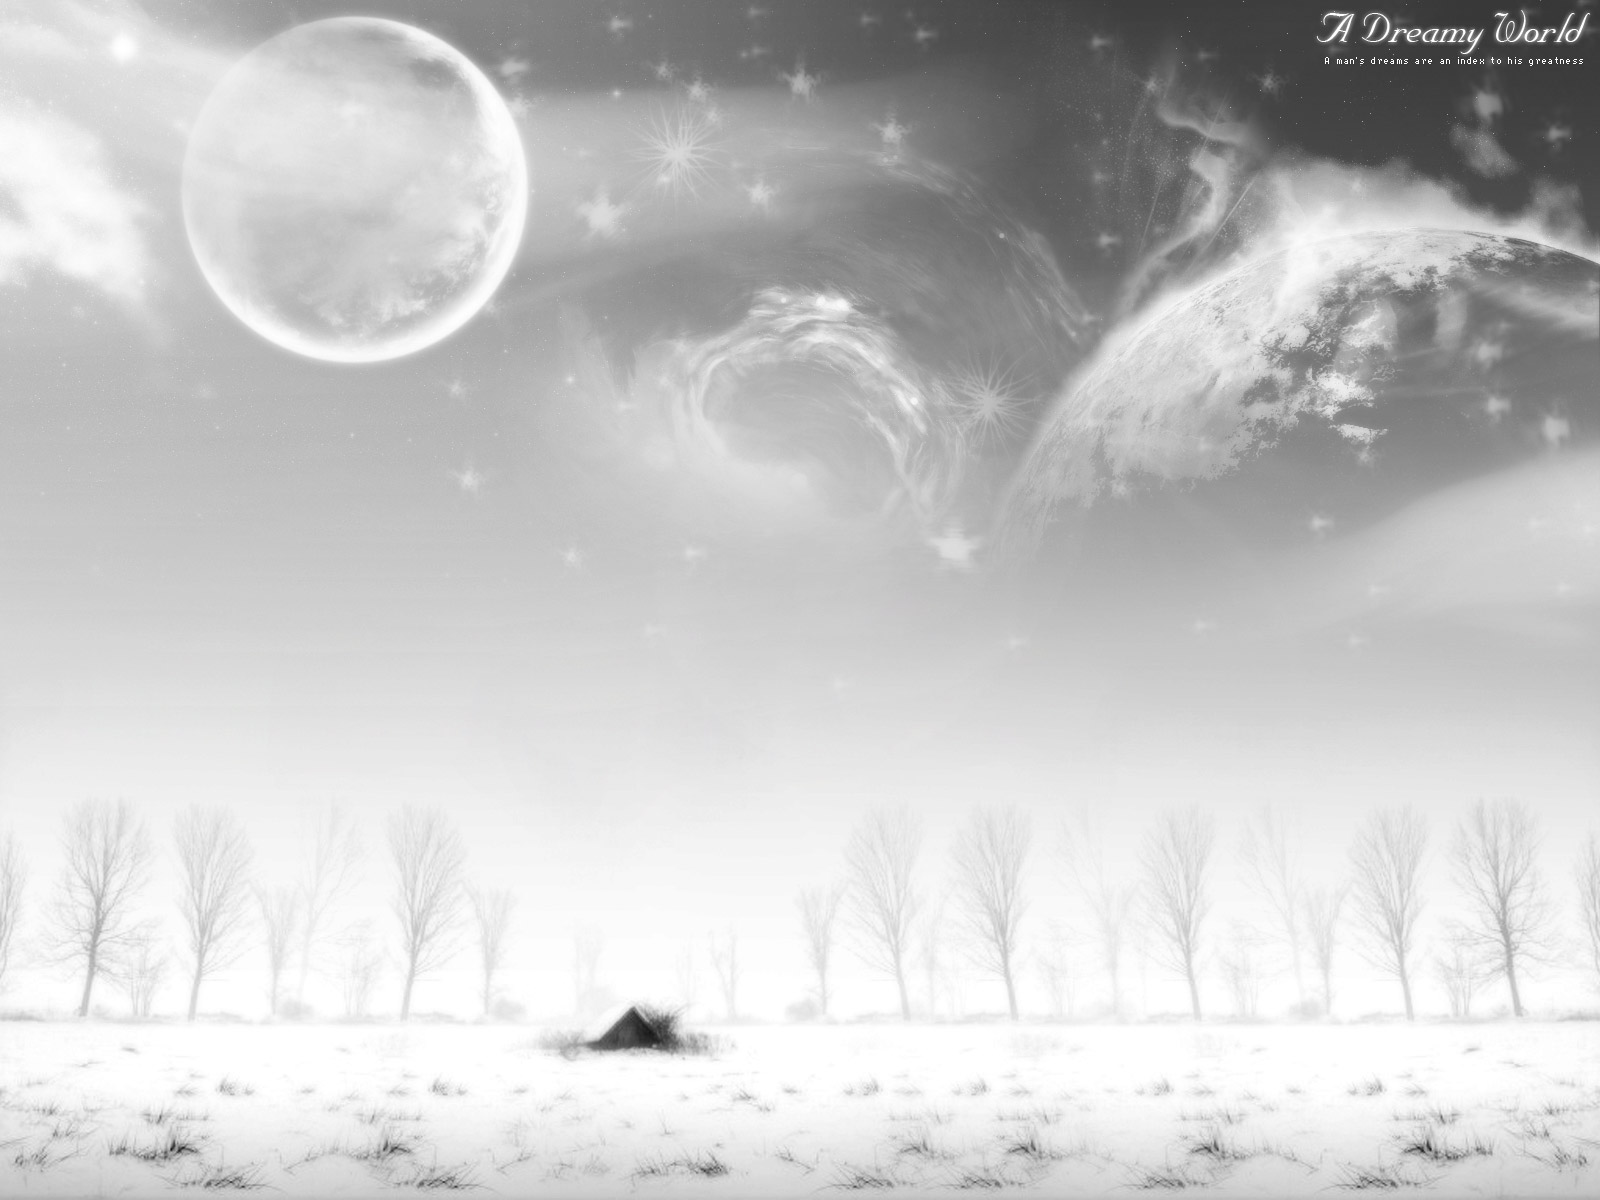 Dreamy World clipart #6, Download drawings